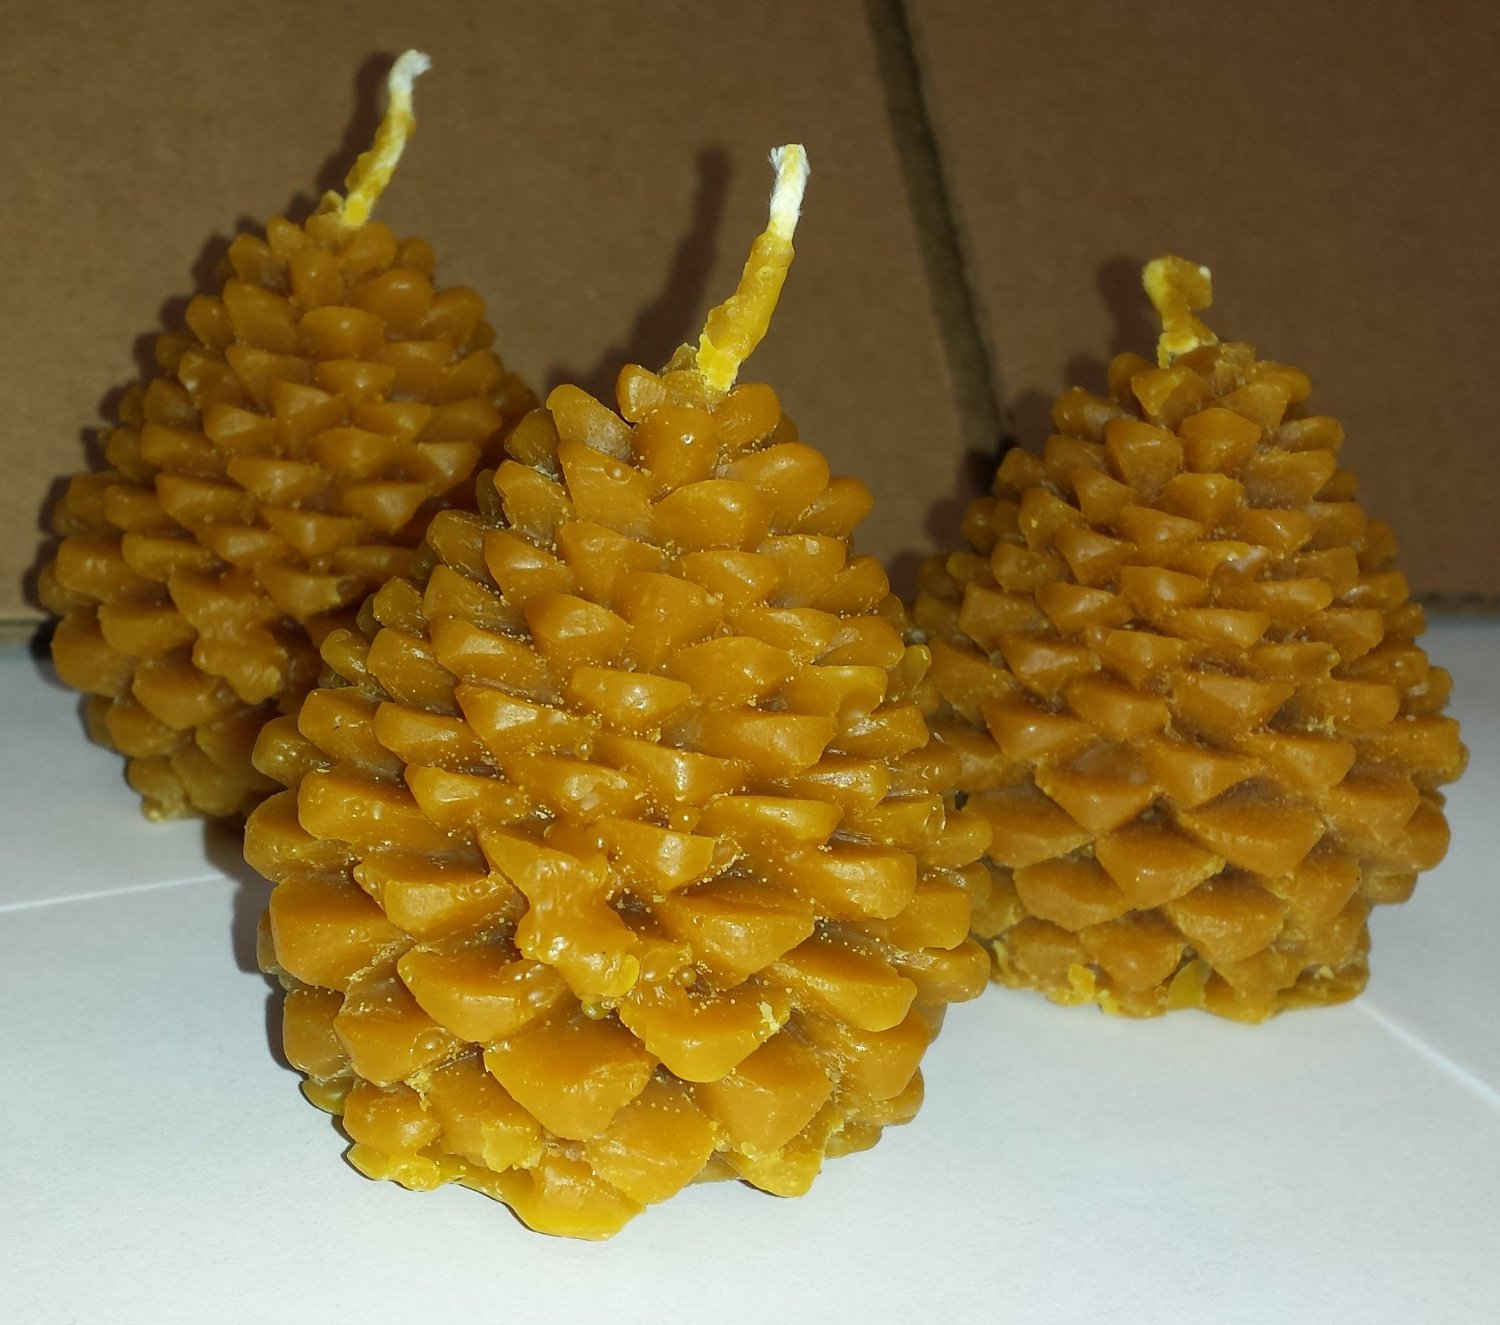 Hansi Naturals Beeswax Pinecone Candles: 3 Pack Golden-brown Pure Wax Long Clean Burning Pine Cone Candles From Hansi Naturals